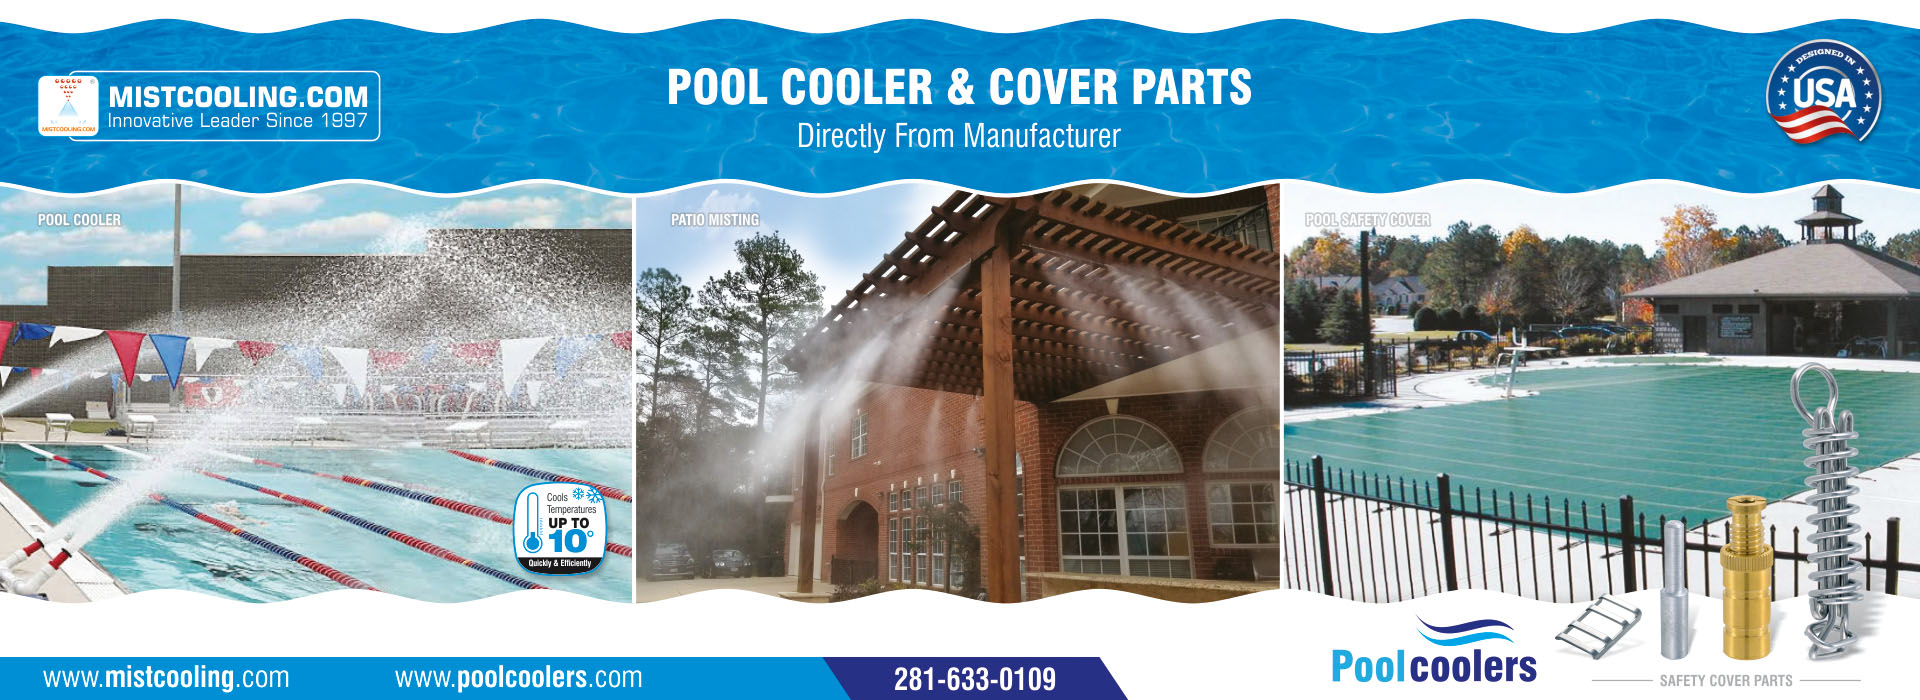 Pool Covers & Parts